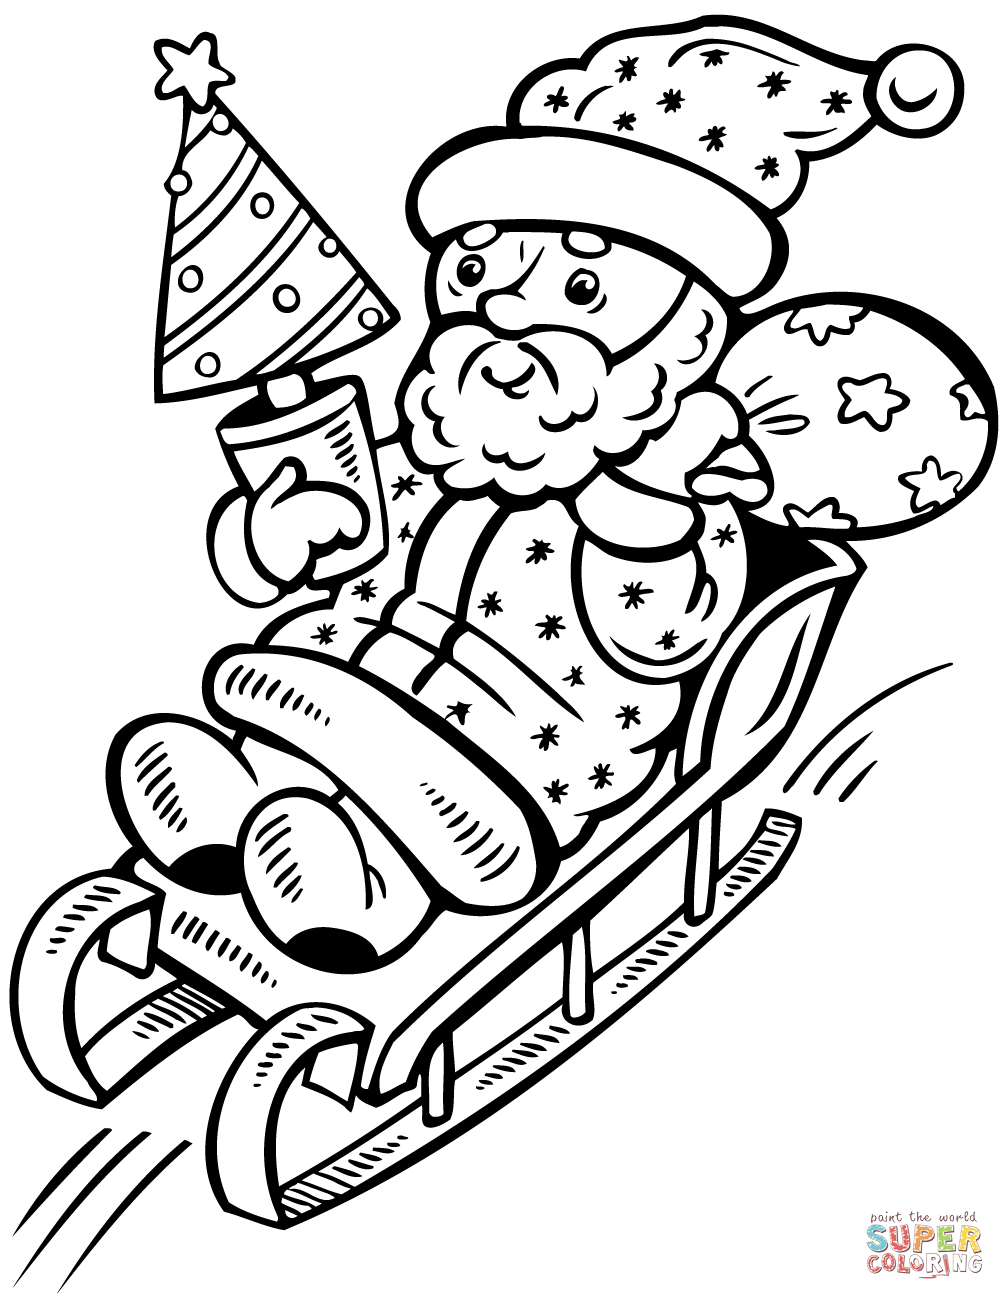 Santa Claus On Sleigh With Christmas Tree Coloring Page Free